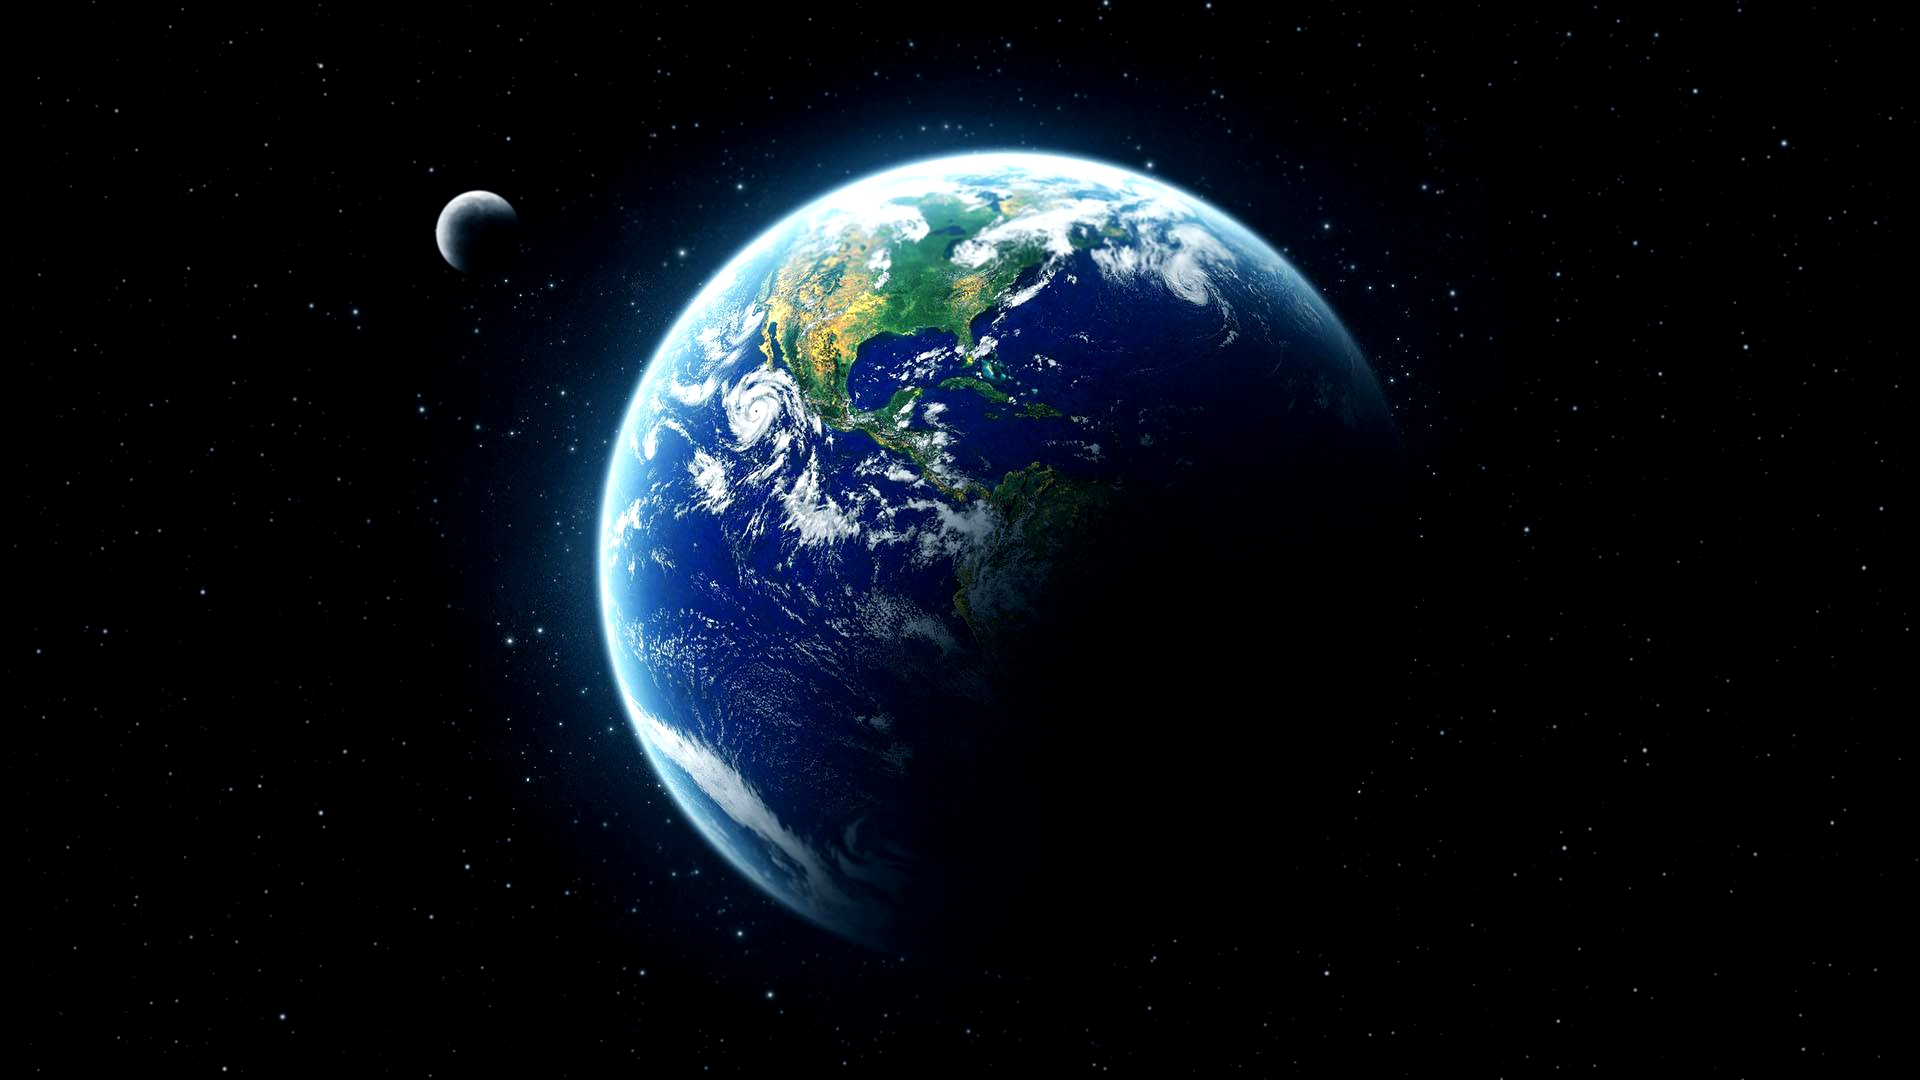 Living Earth Wallpaper